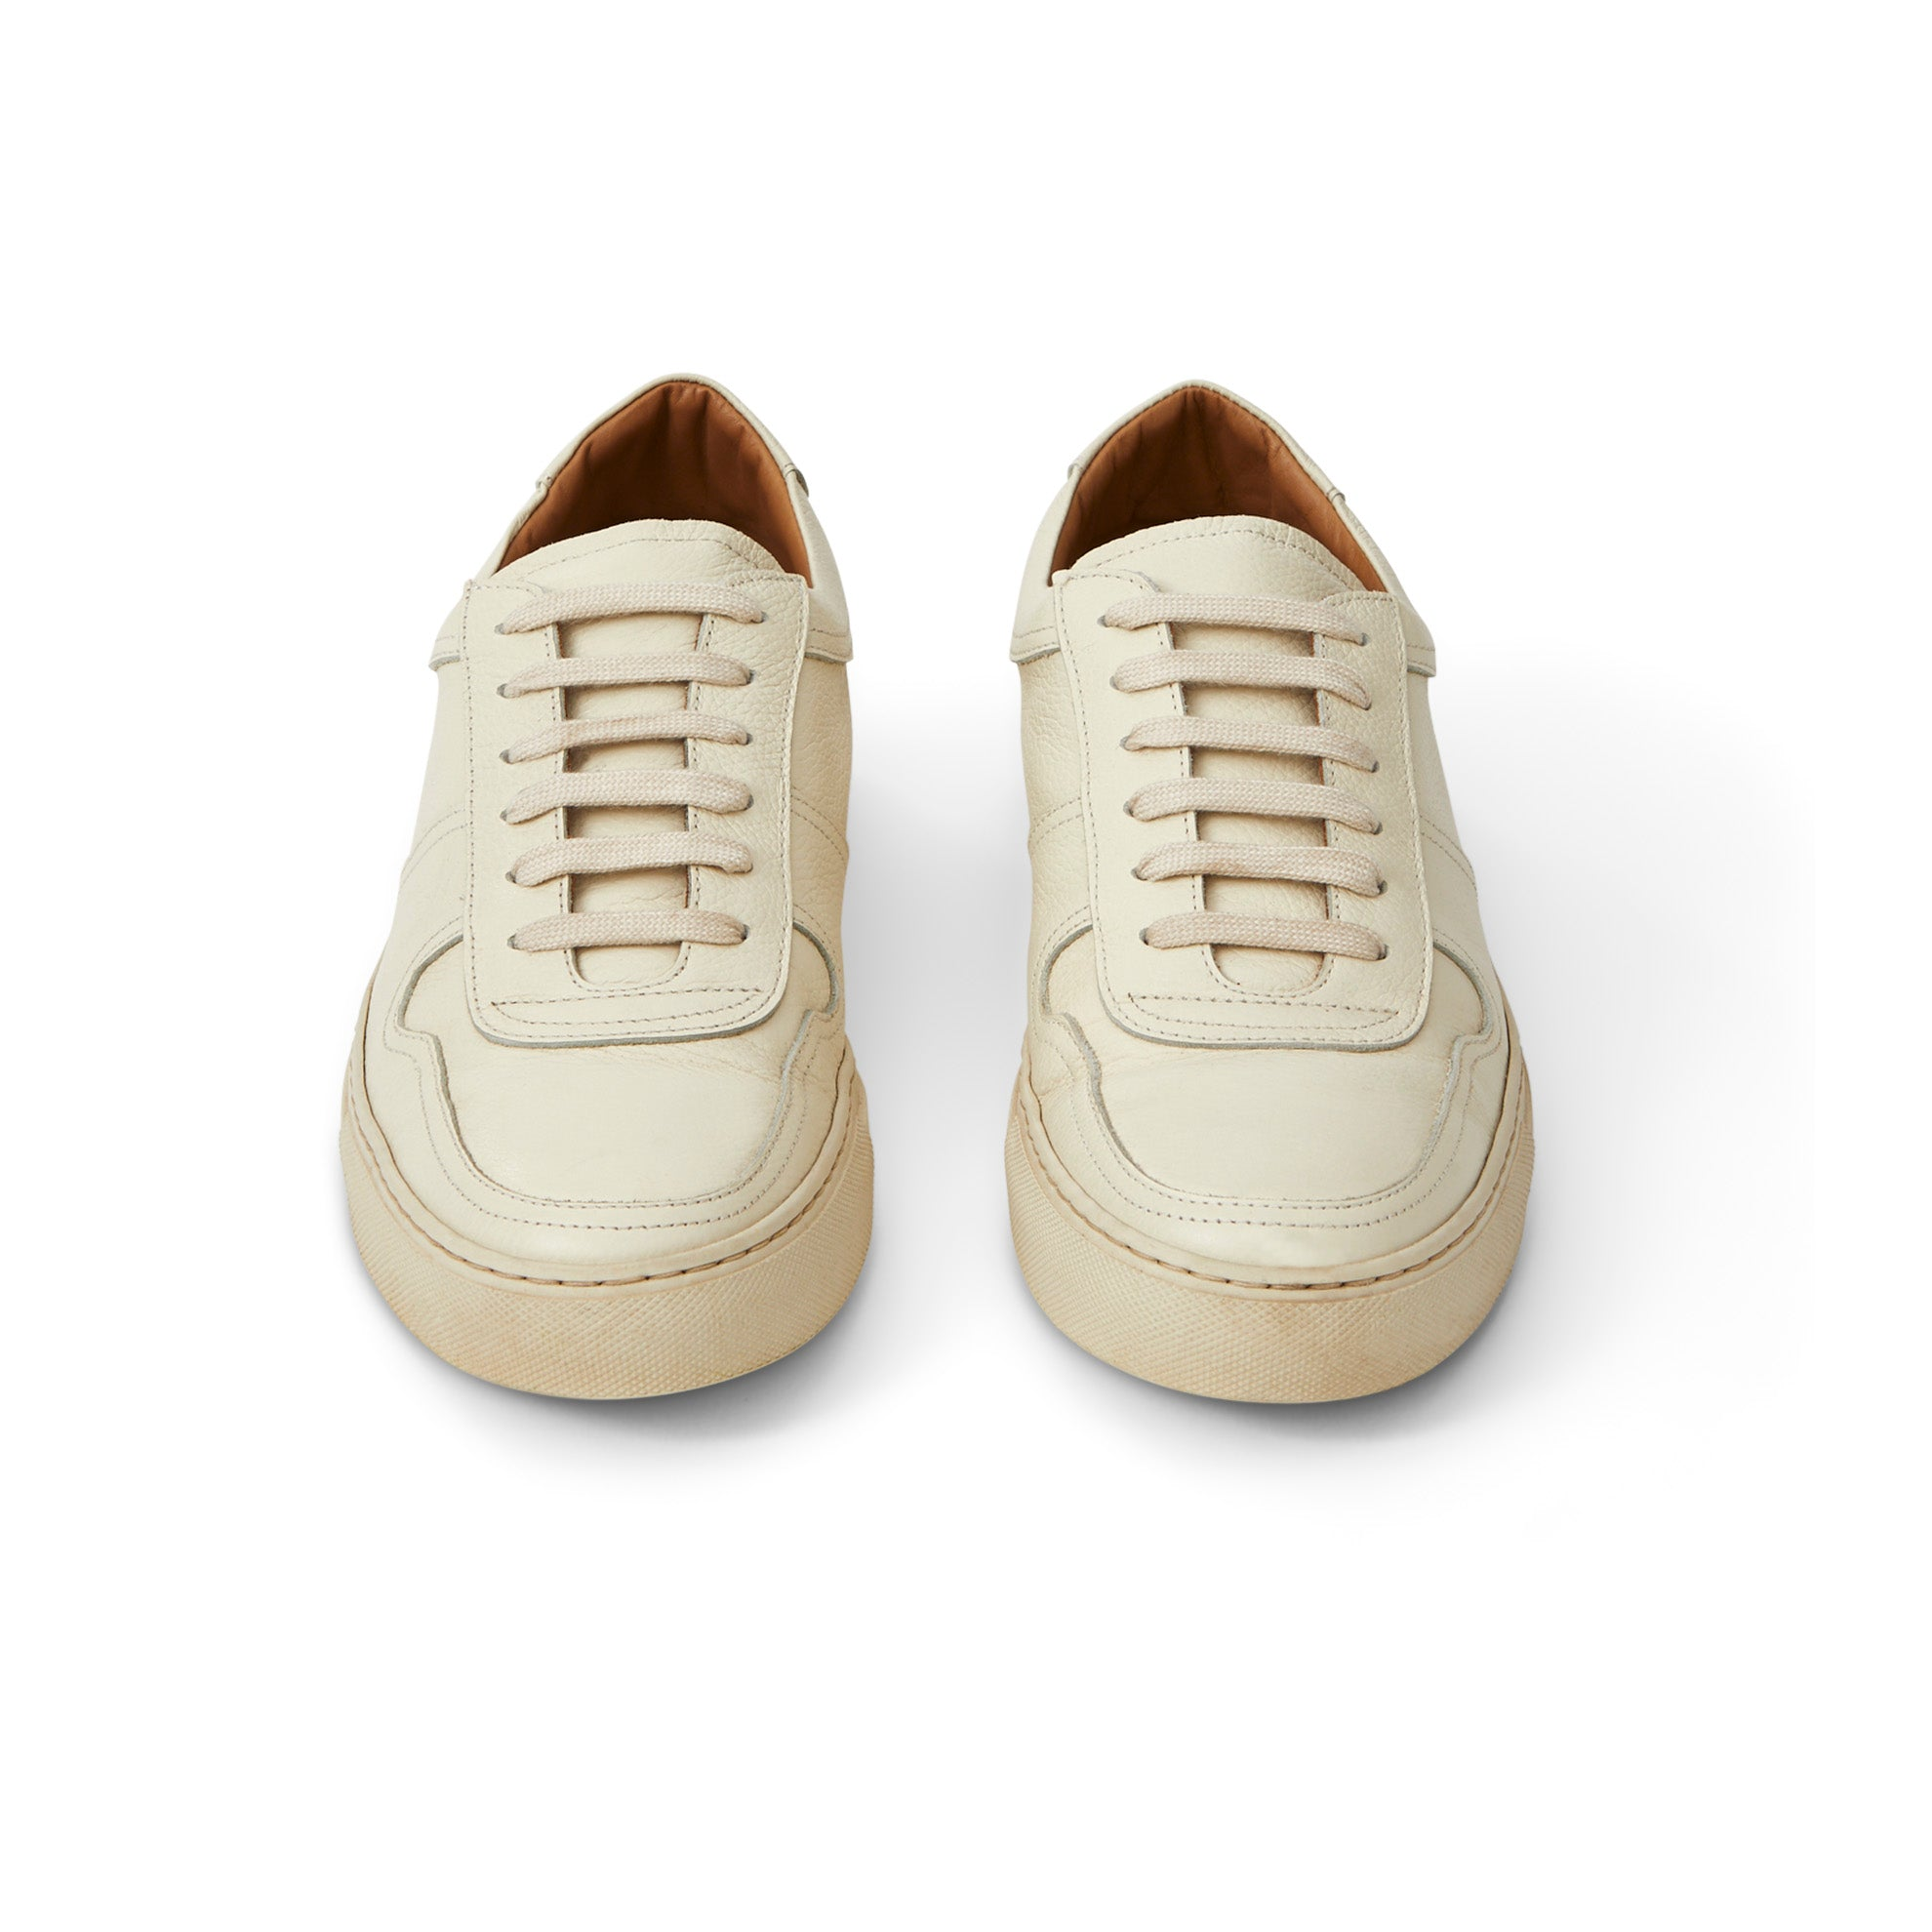 Men's Leather Sneakers